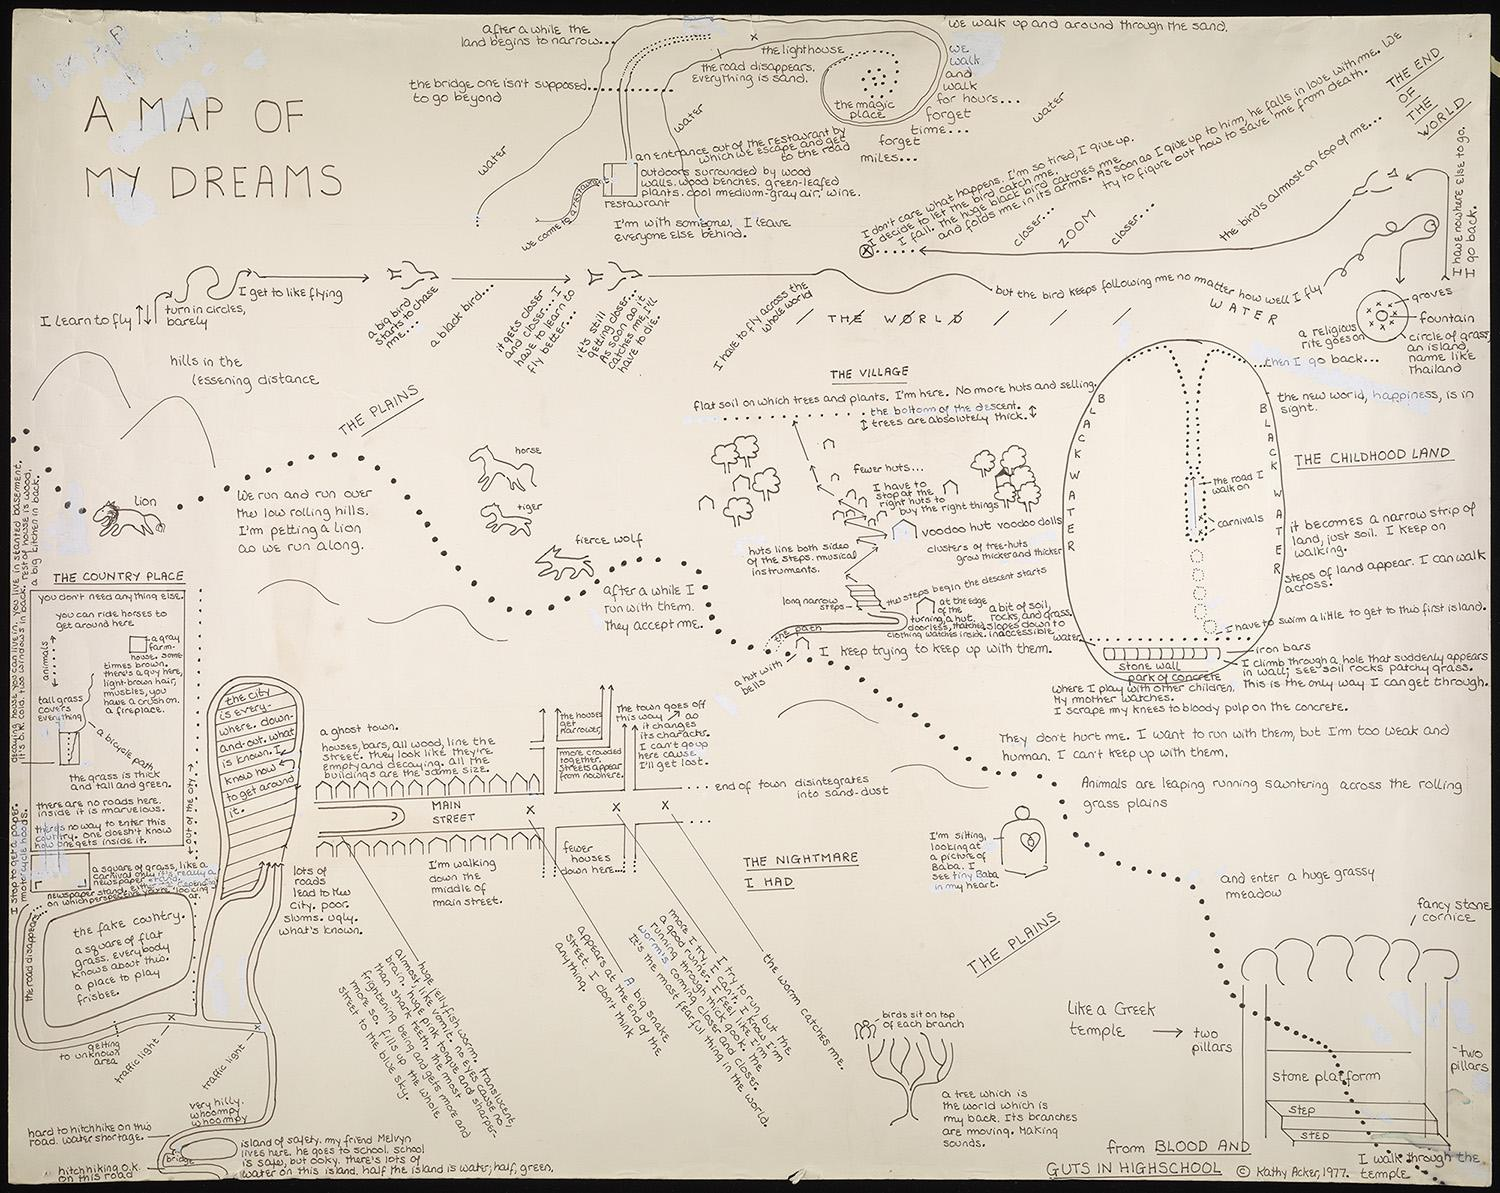 Kathy Acker dream map